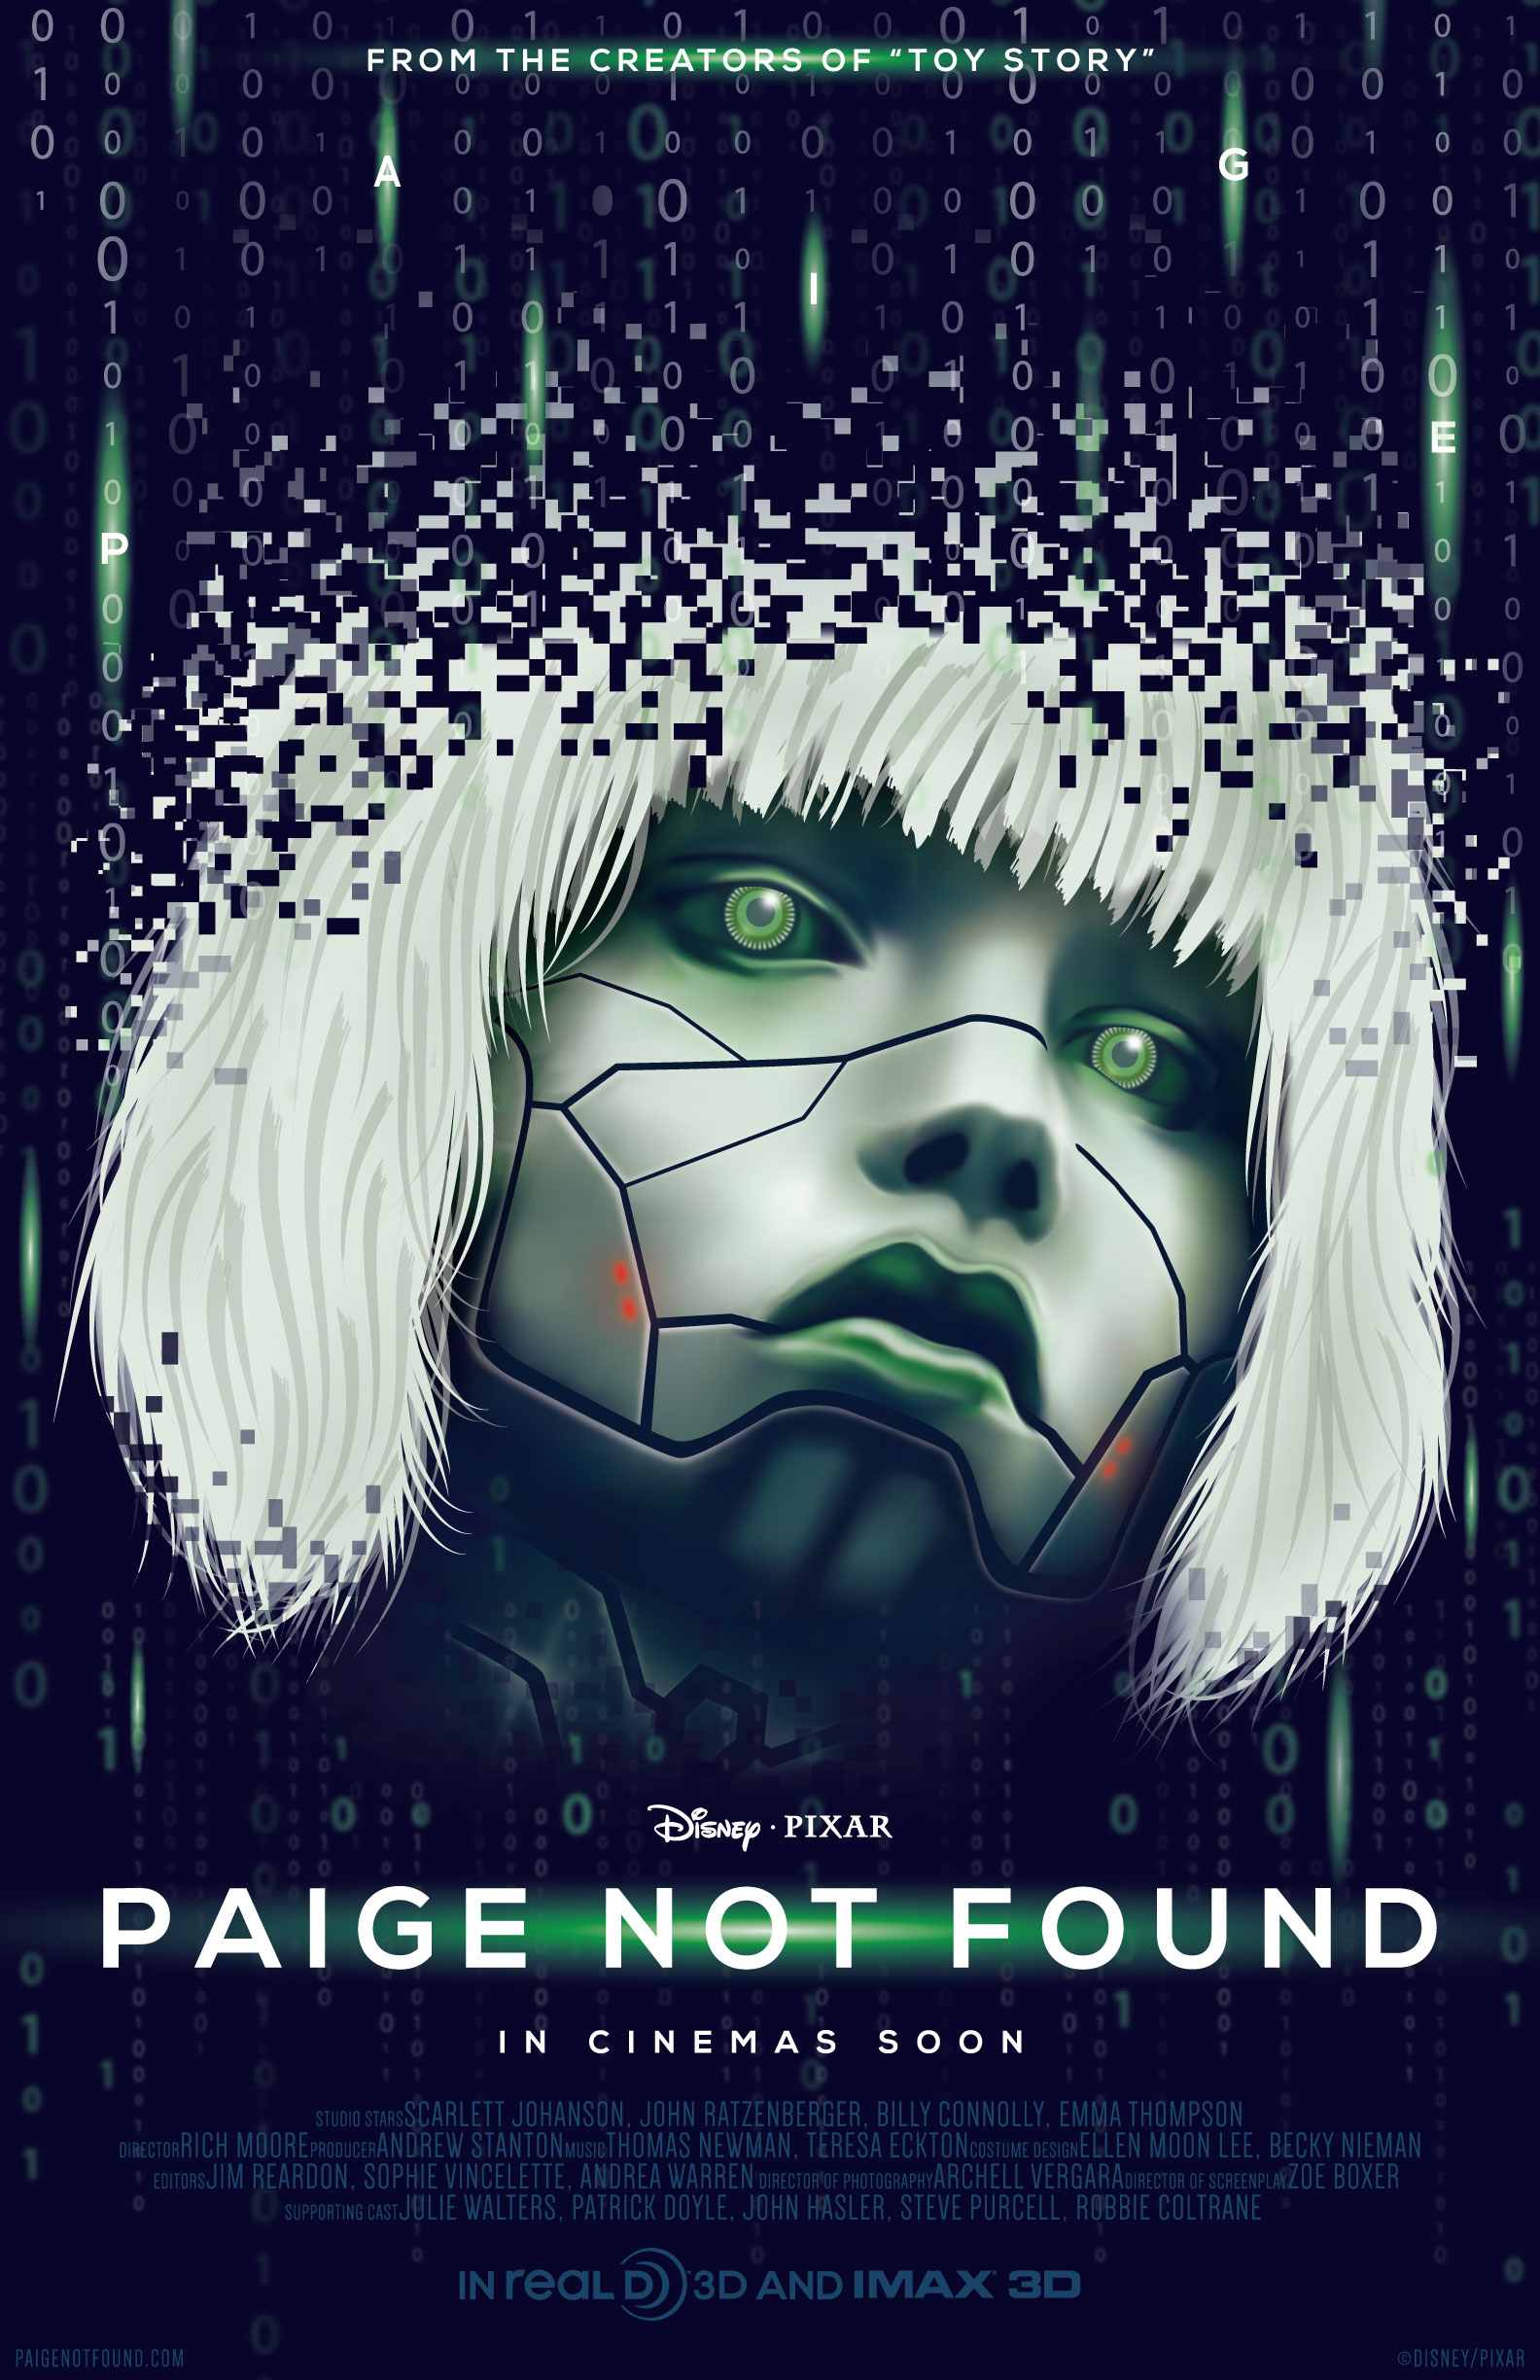 PAIGE NOT FOUND